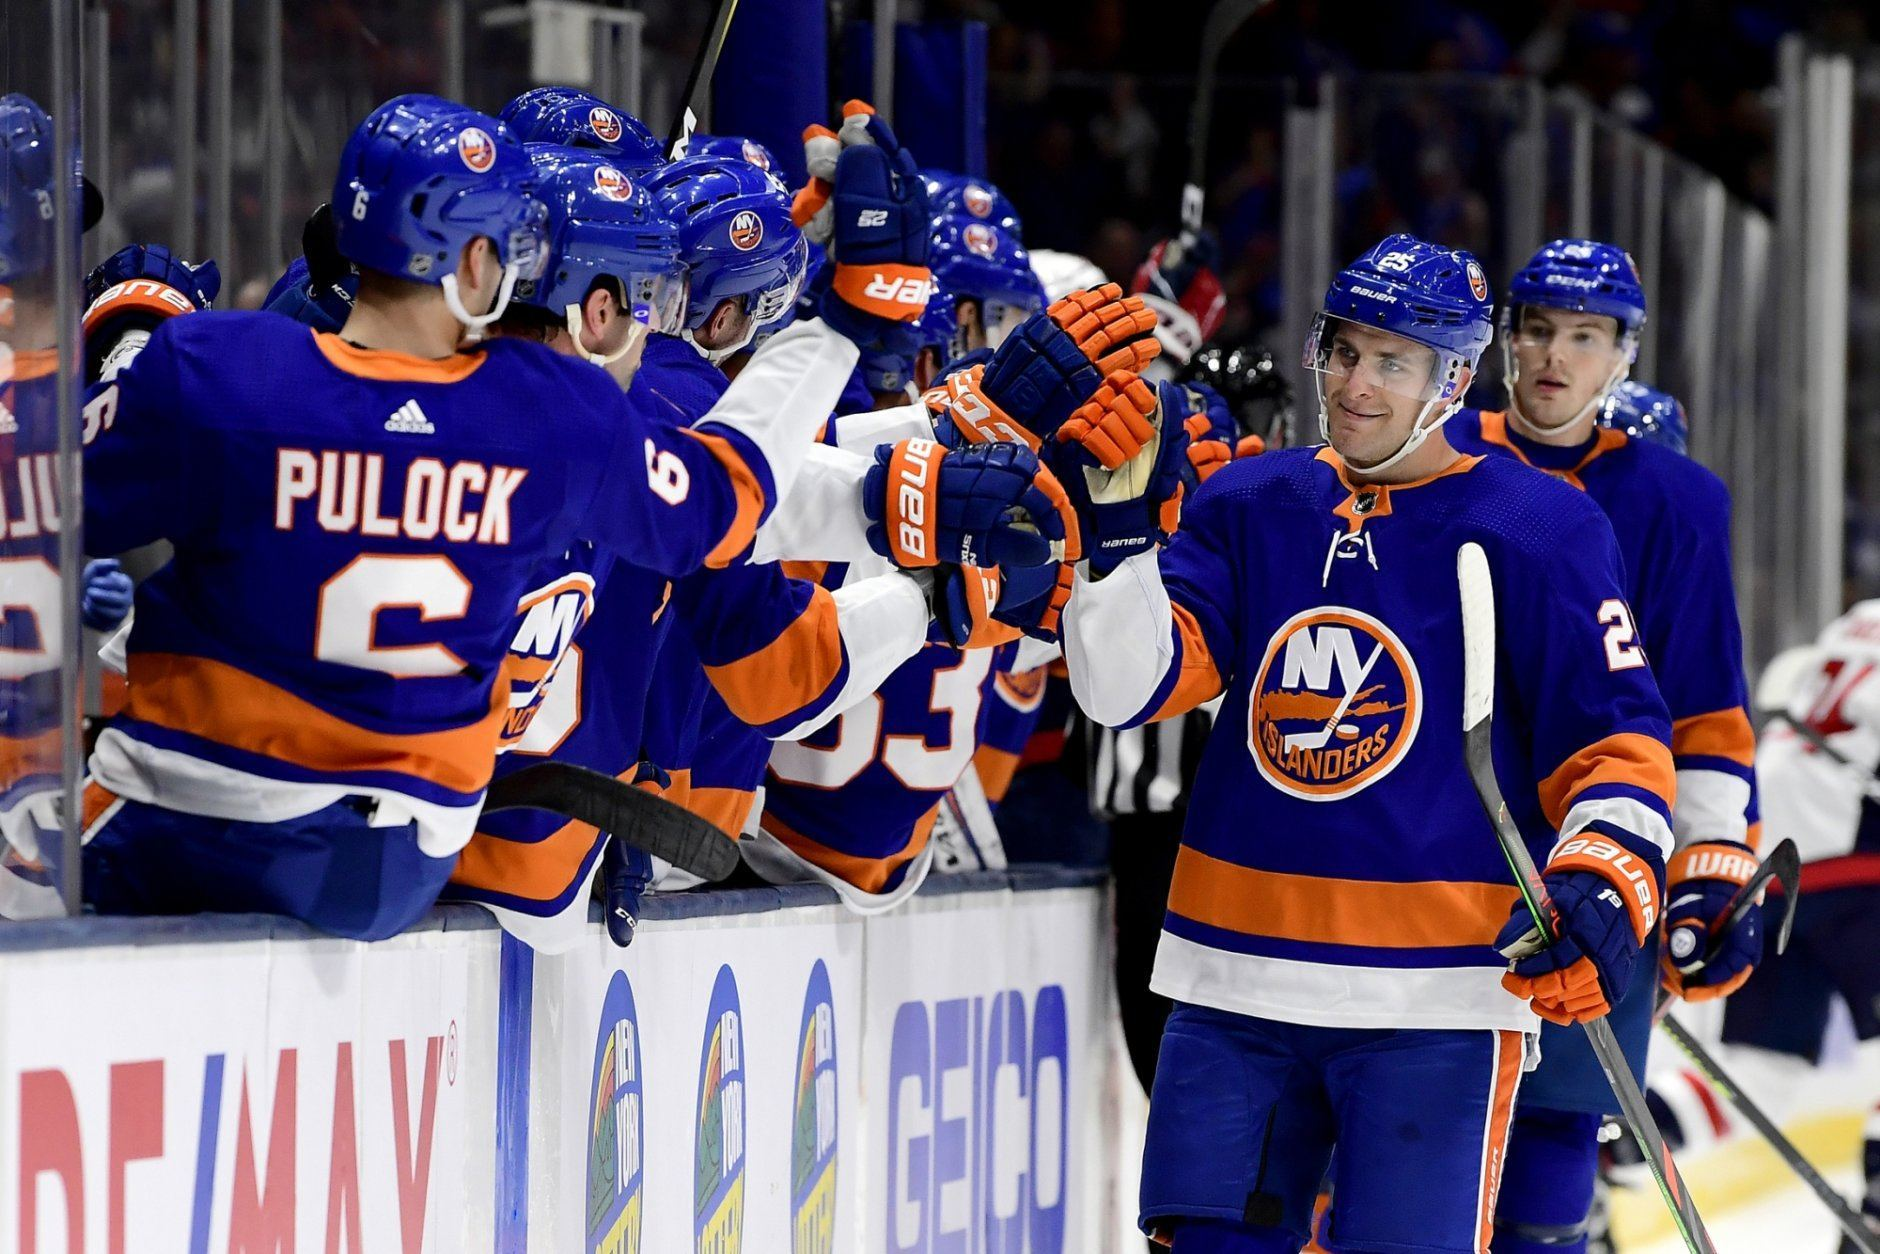 New York Islanders defenseman Devon Toews (25) is congratulated by his teammates after scoring a goal, against the Washington Capitals during the first period of an NHL hockey game, Friday, Oct. 4, 2019, in Uniondale, N.Y. (AP Photo/Steven Ryan)